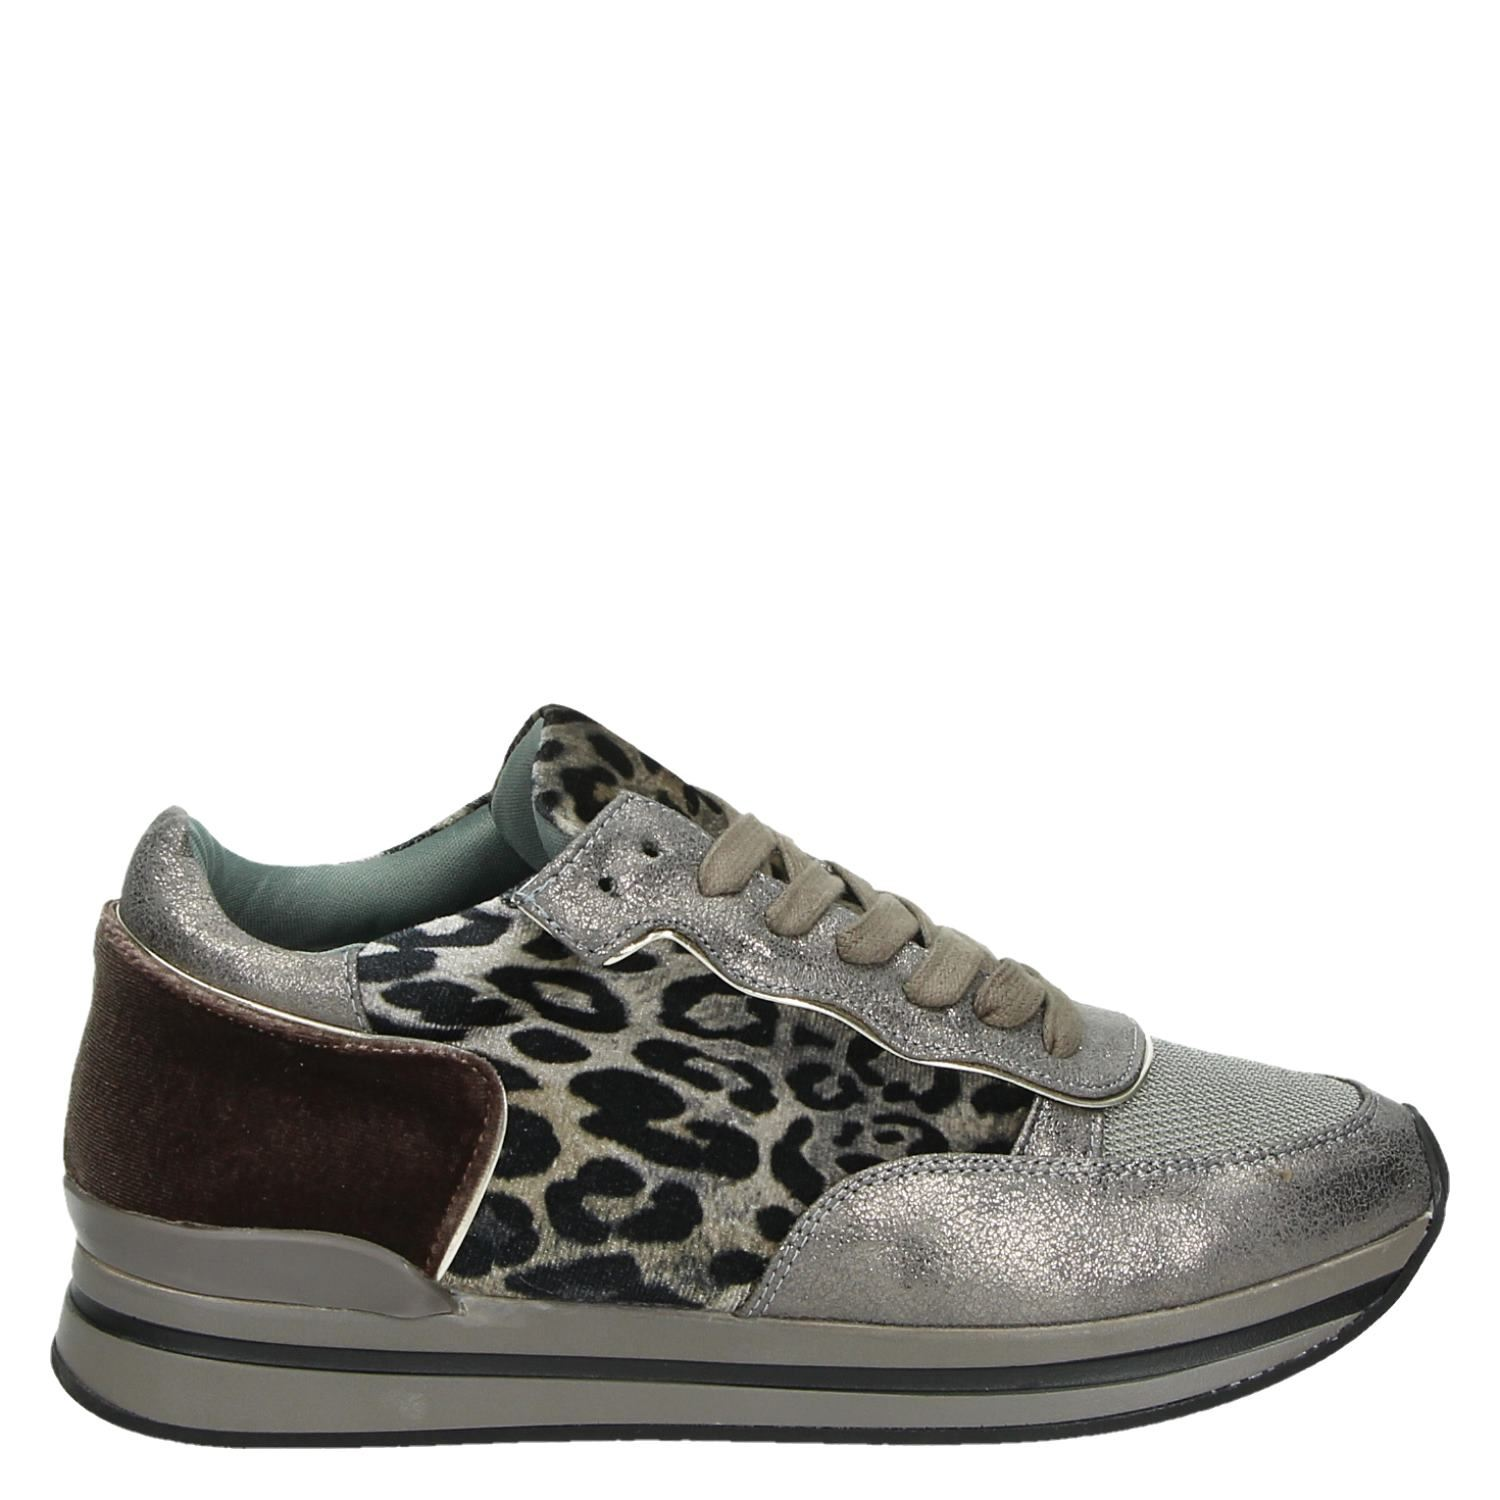 La Strada Faire Baskets Taupe 7YtDyZQF